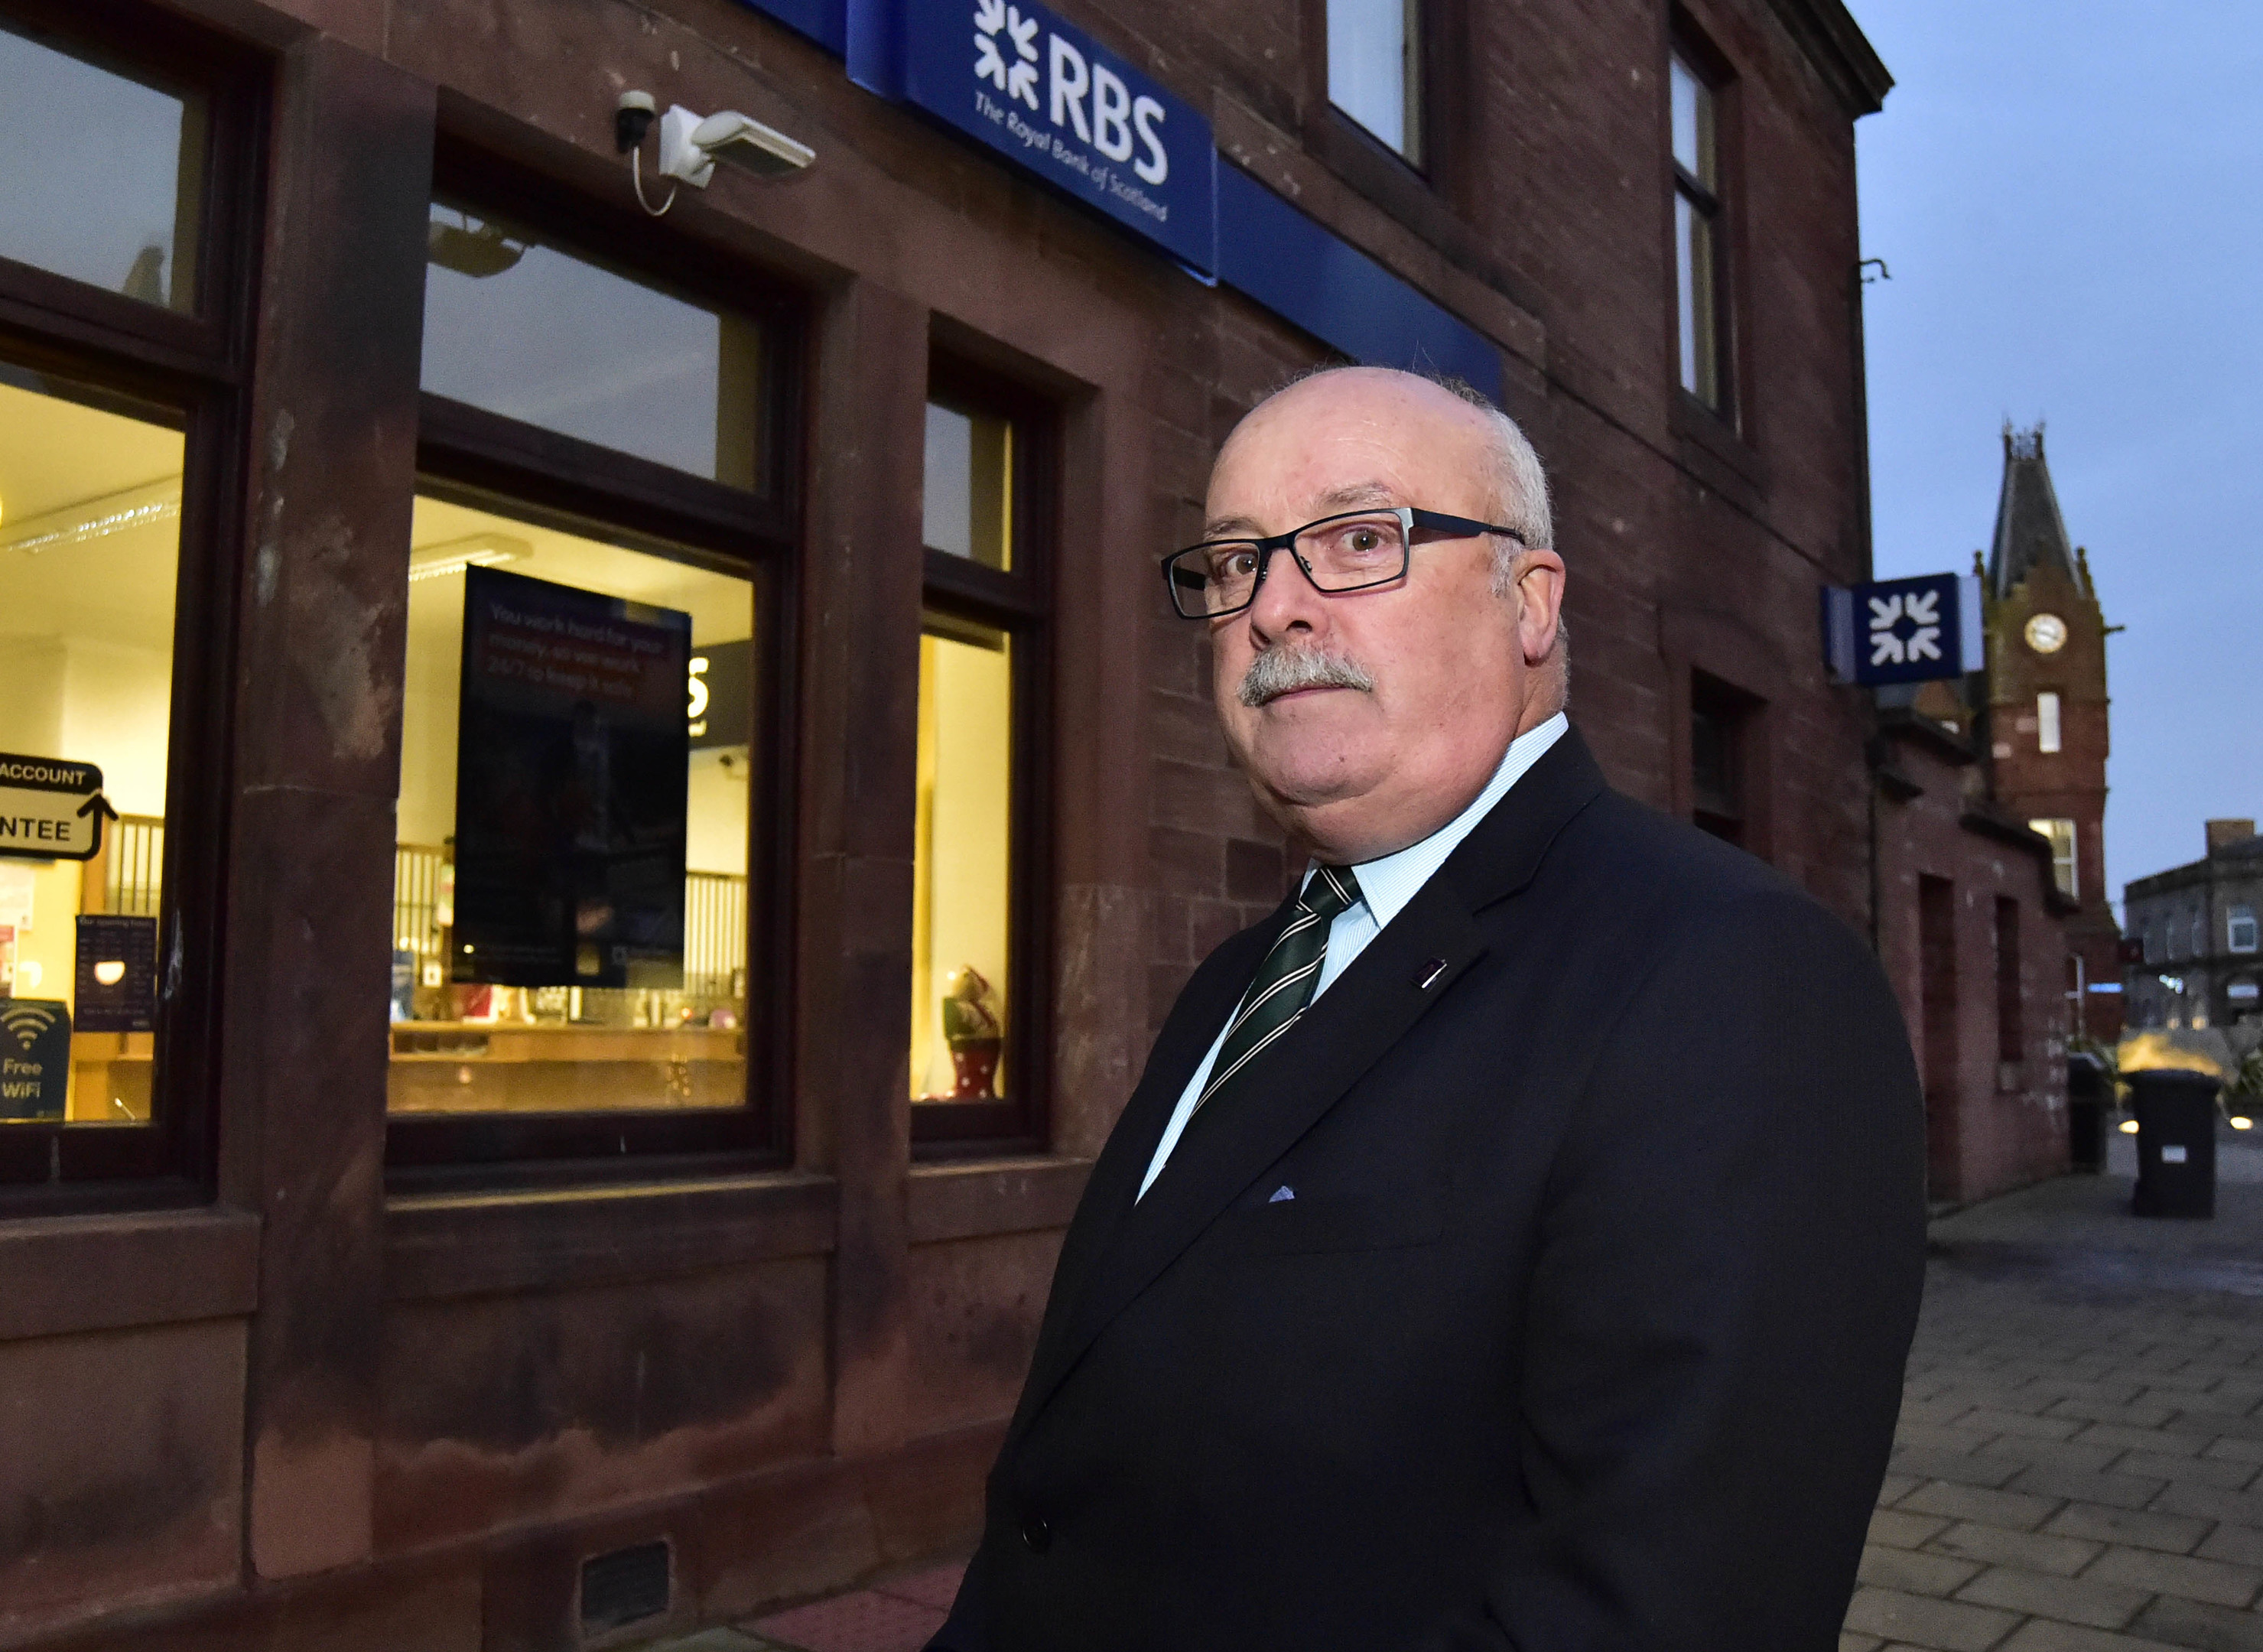 Cllr Alastair Forysth at the  RBS branch in Turriff.